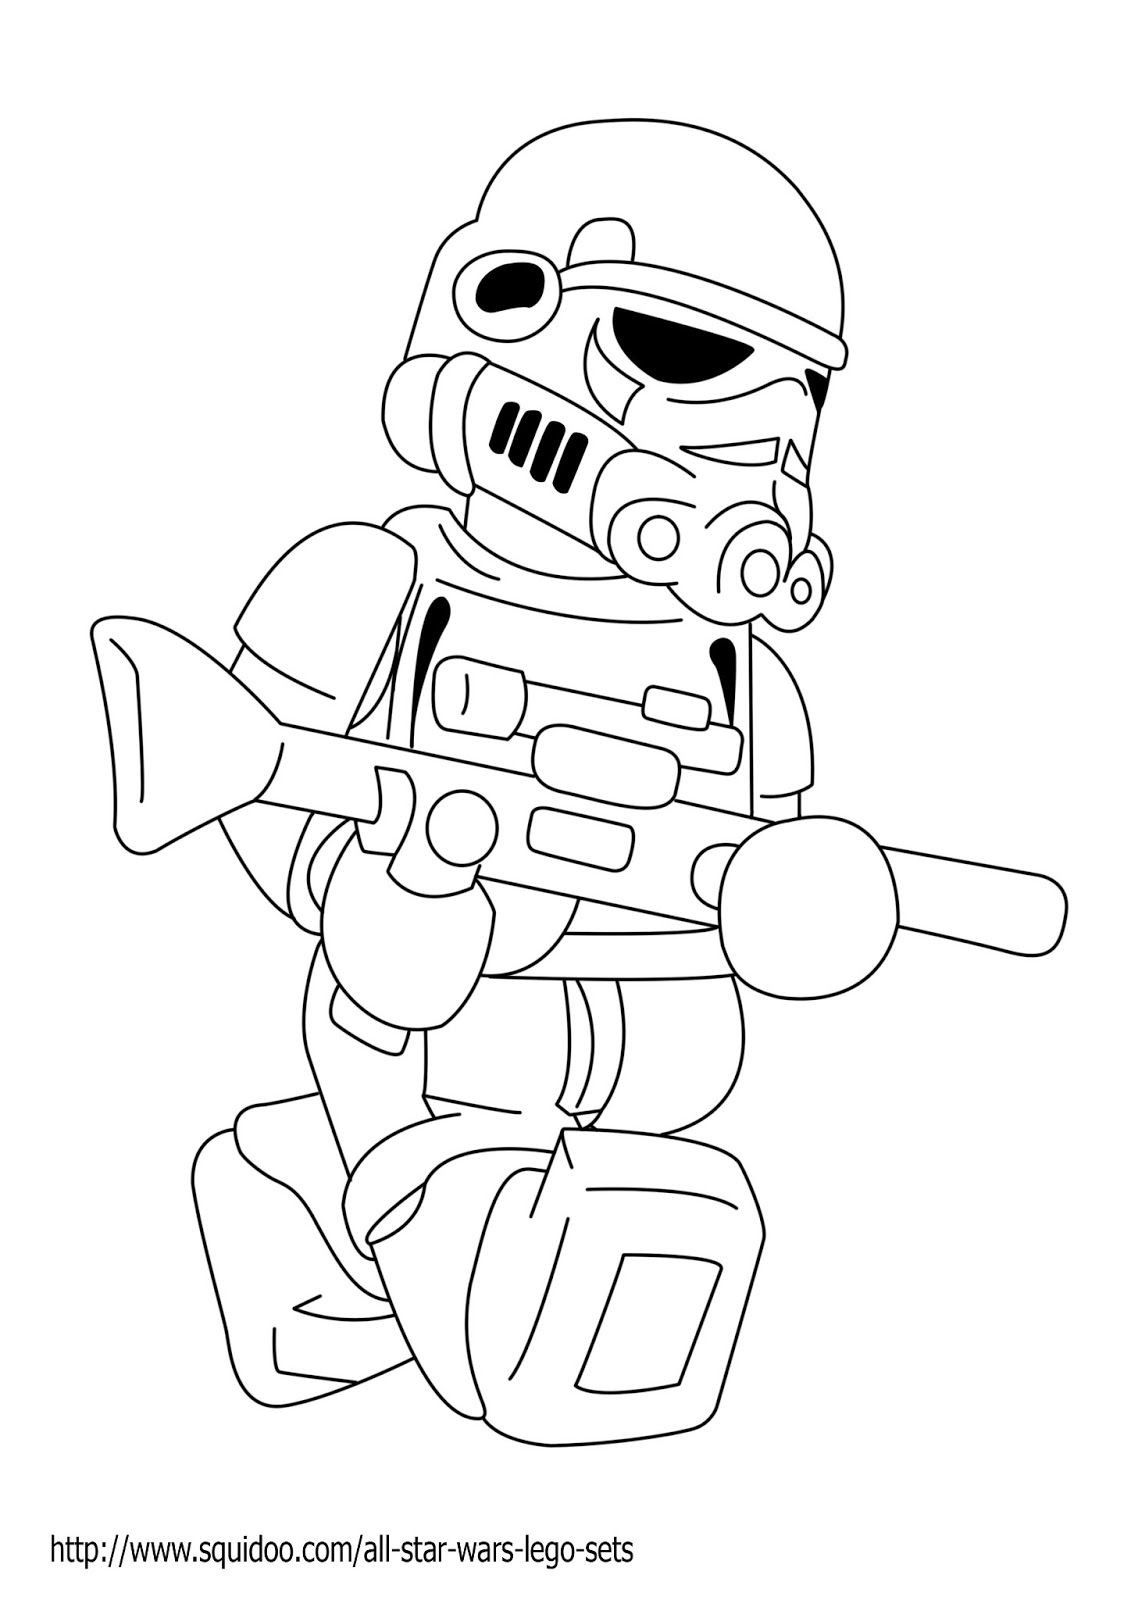 Starwars Coloring Pages In Lego Starwars Coloring Pages Best Coloring Pages Collection